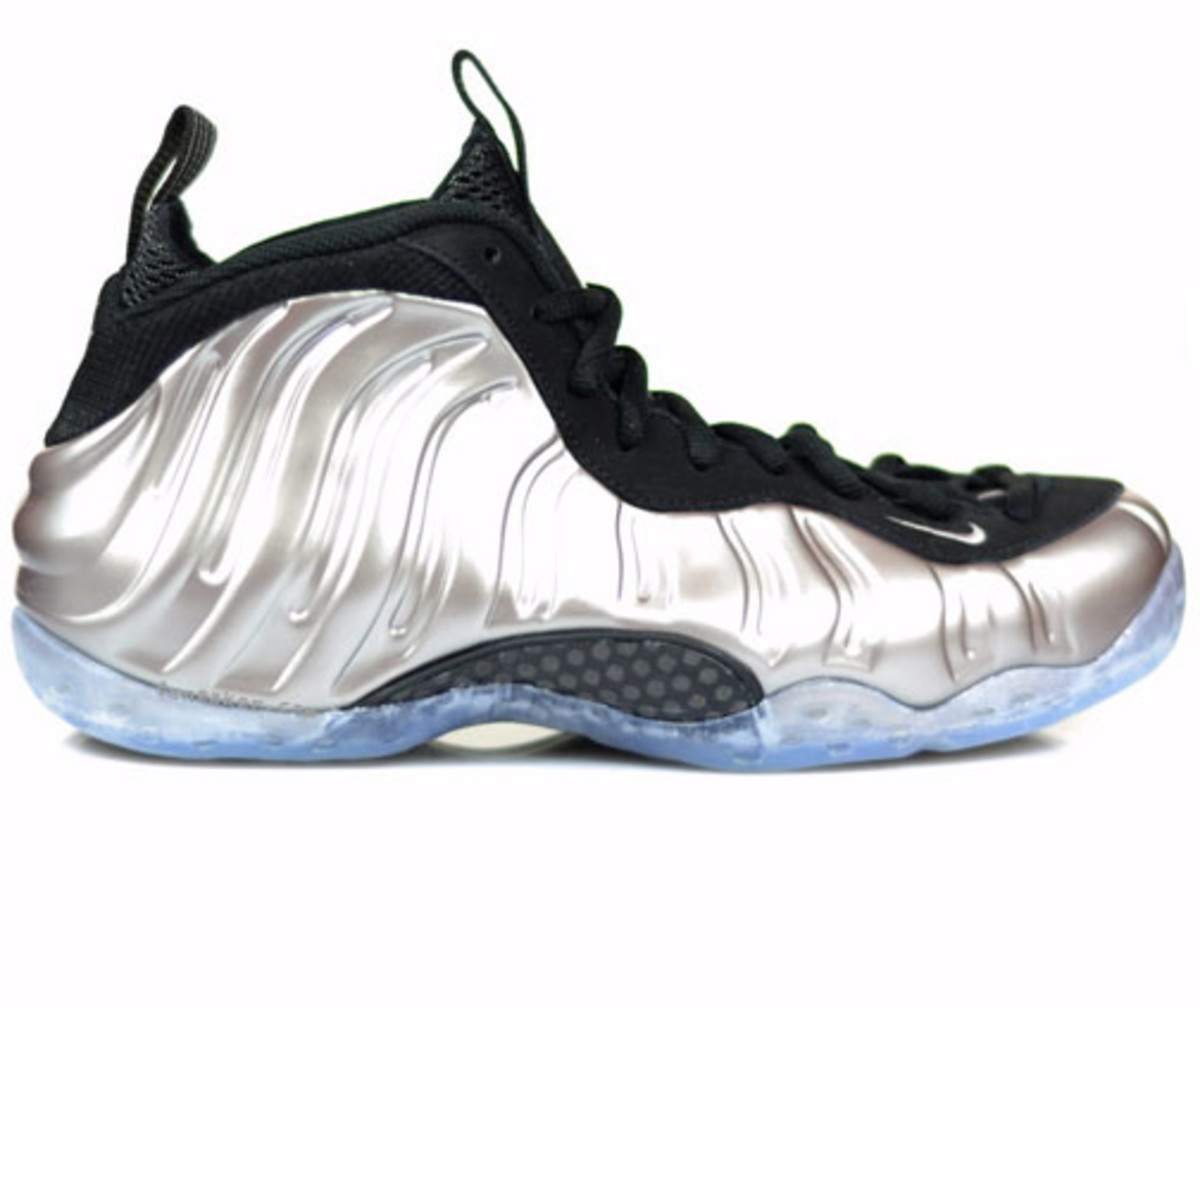 Nike Air Foamposite One Pewter | Available - 1